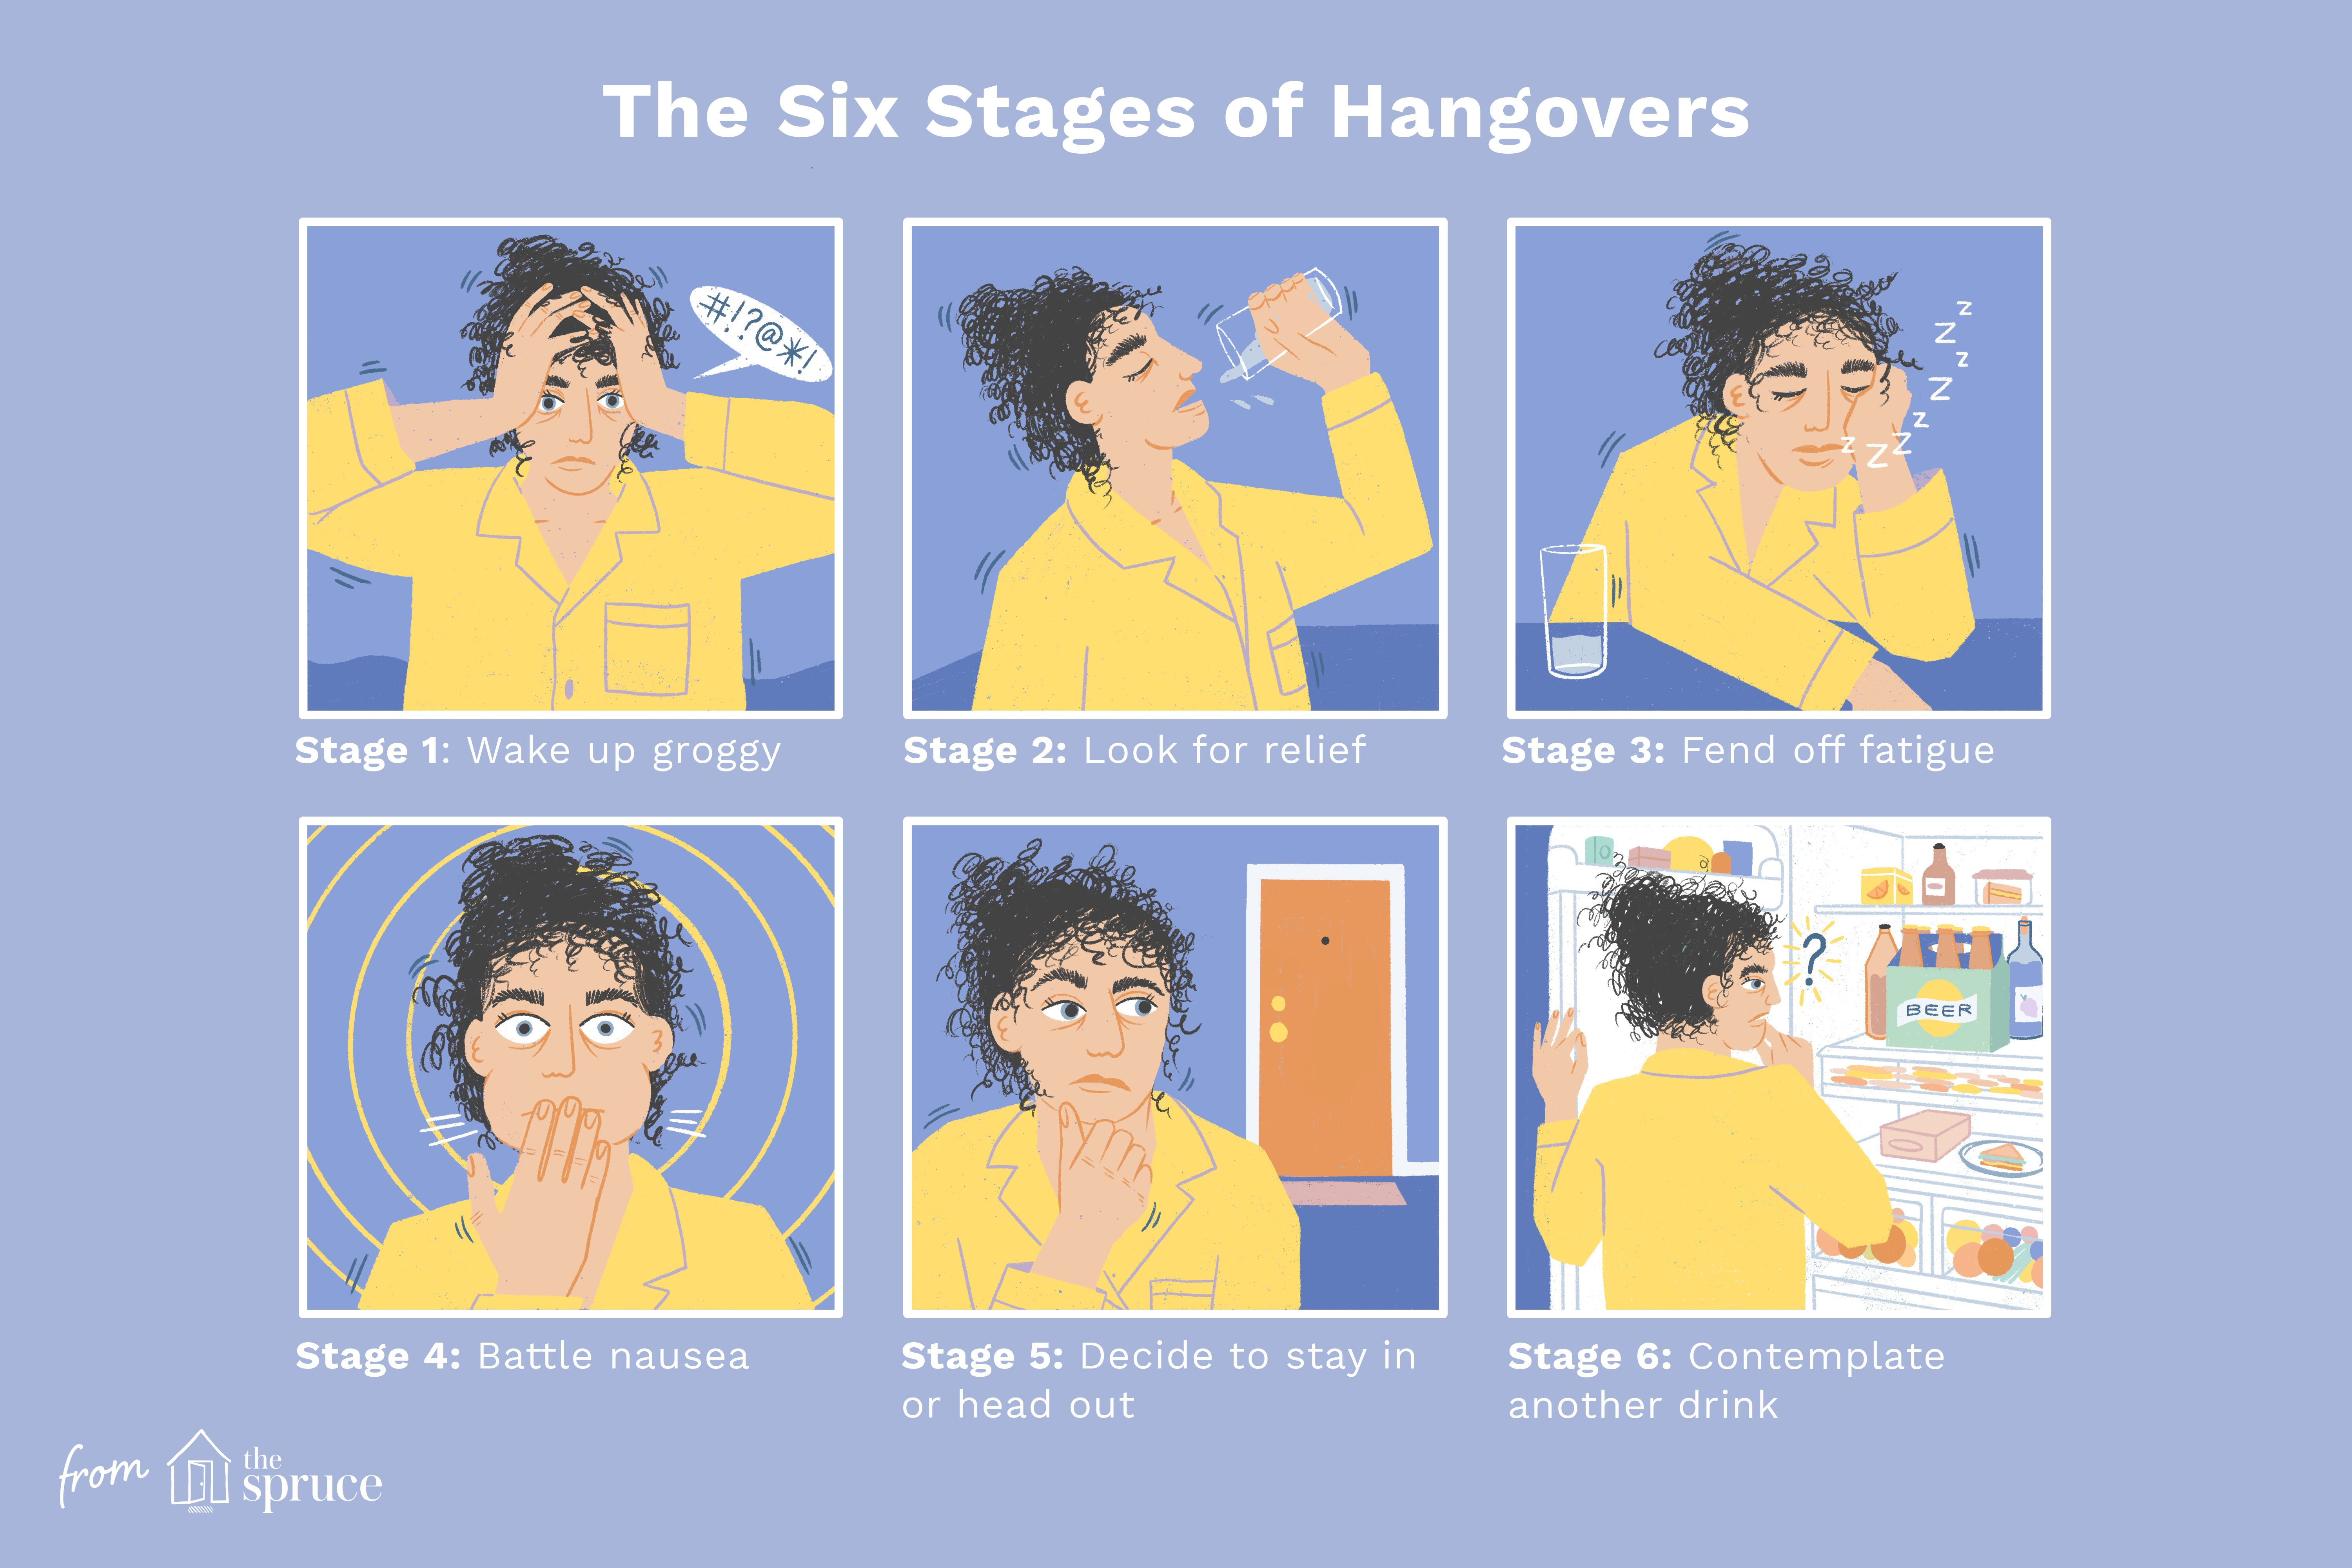 The Six Stages of Hangovers